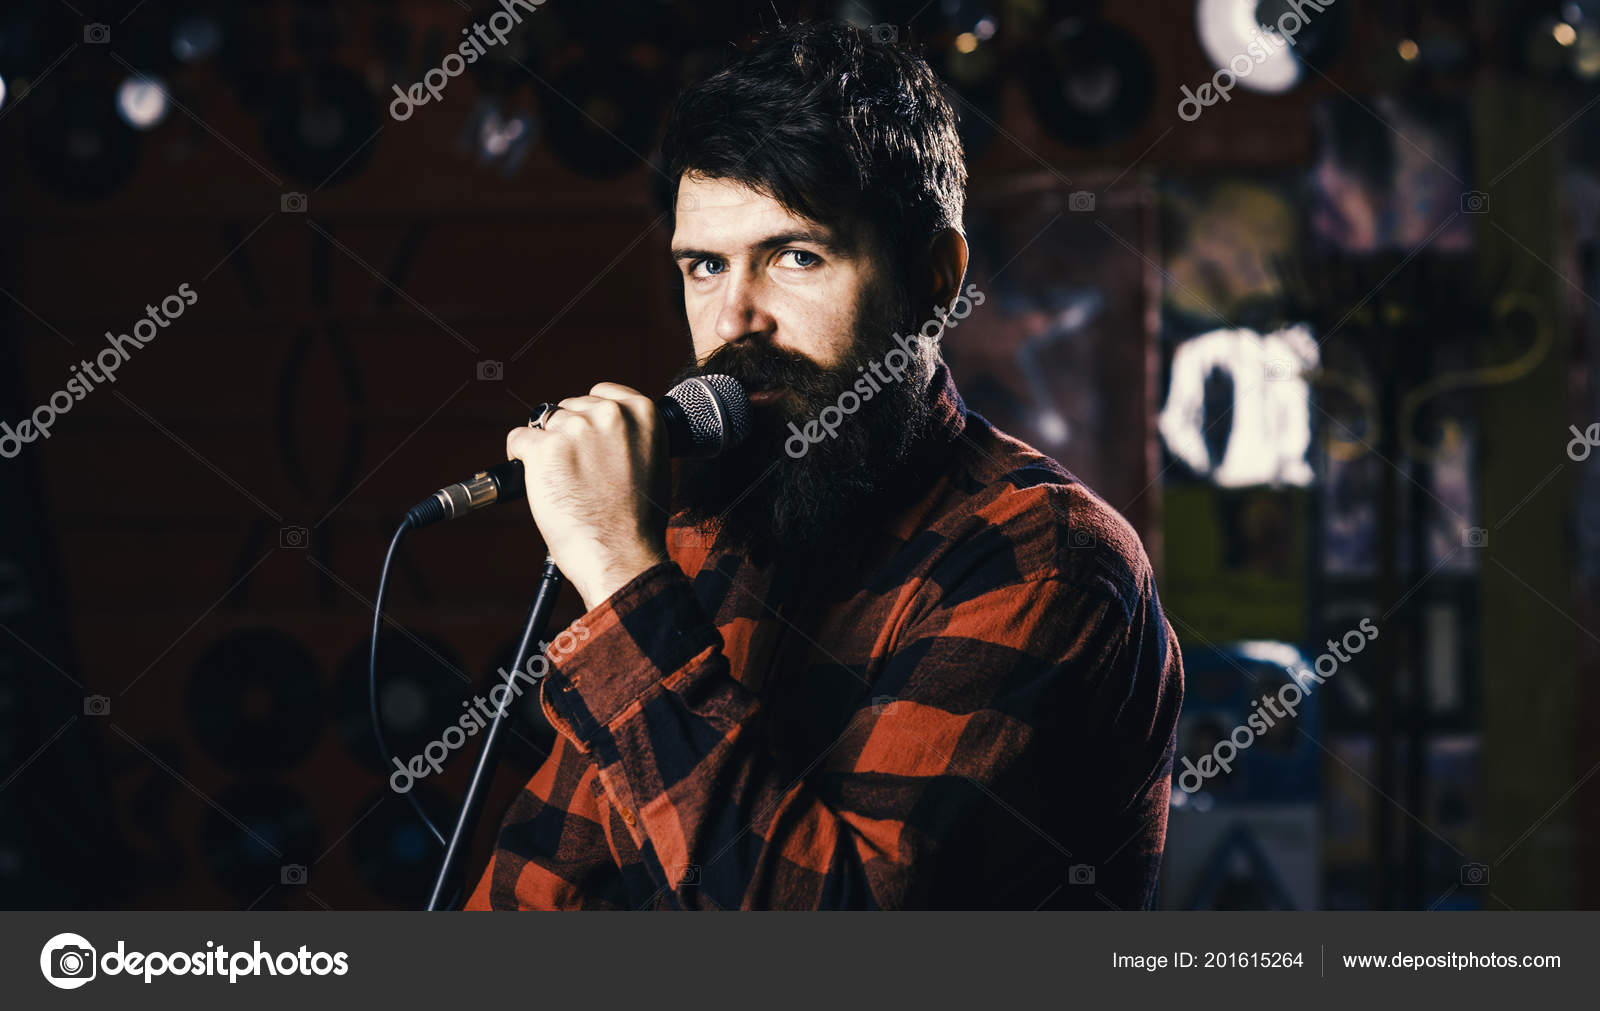 Musician with beard and mustache singing song in karaoke  Hipster